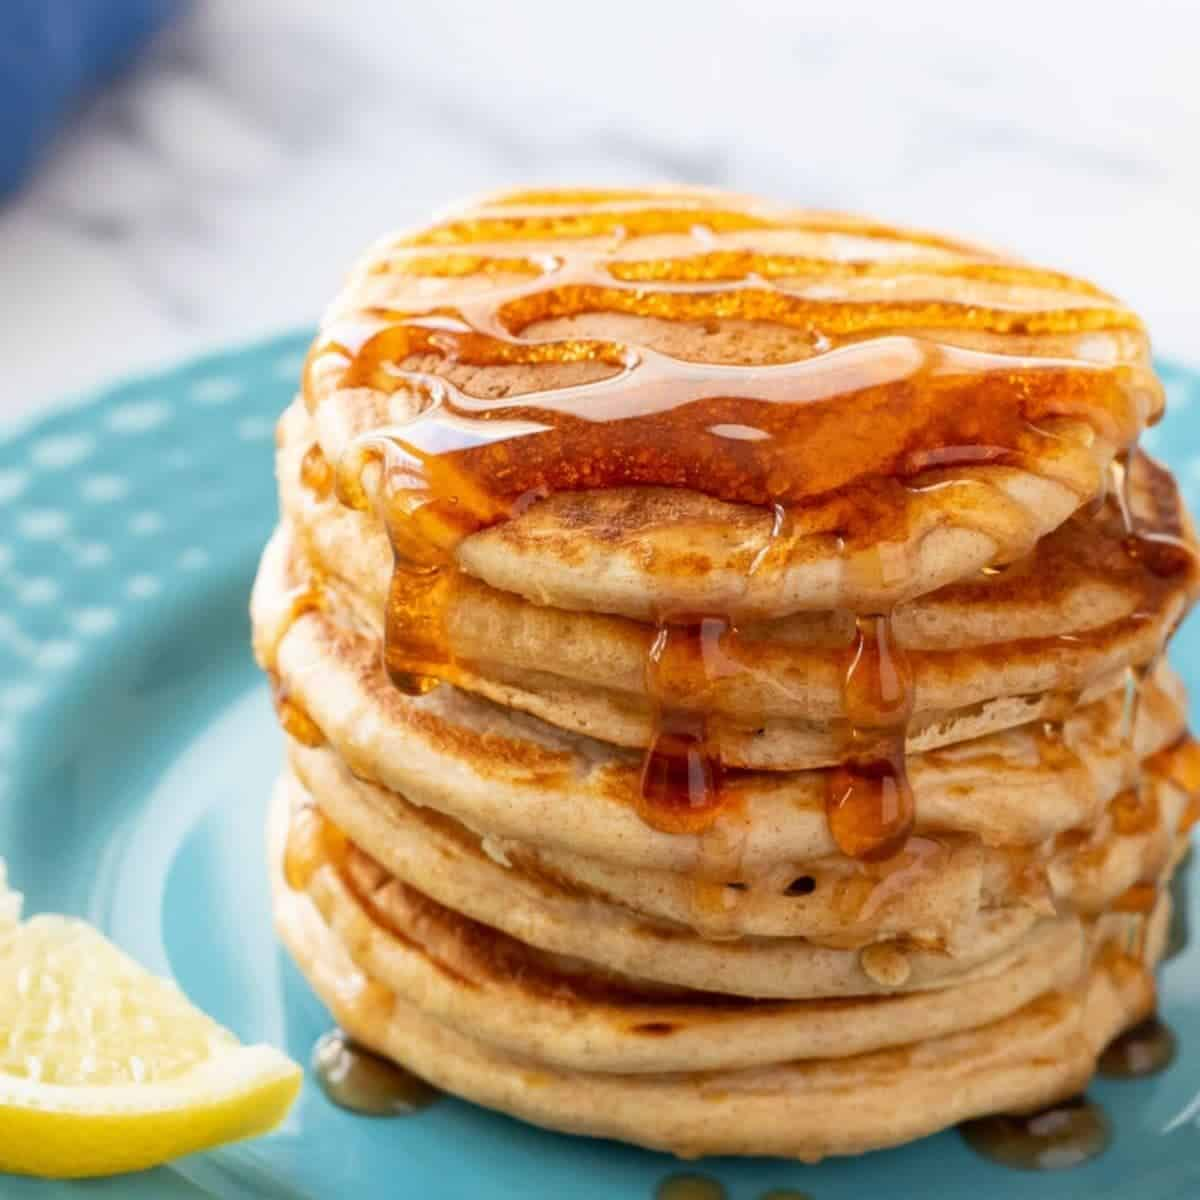 Stack of pancakes with syrup on blue plate